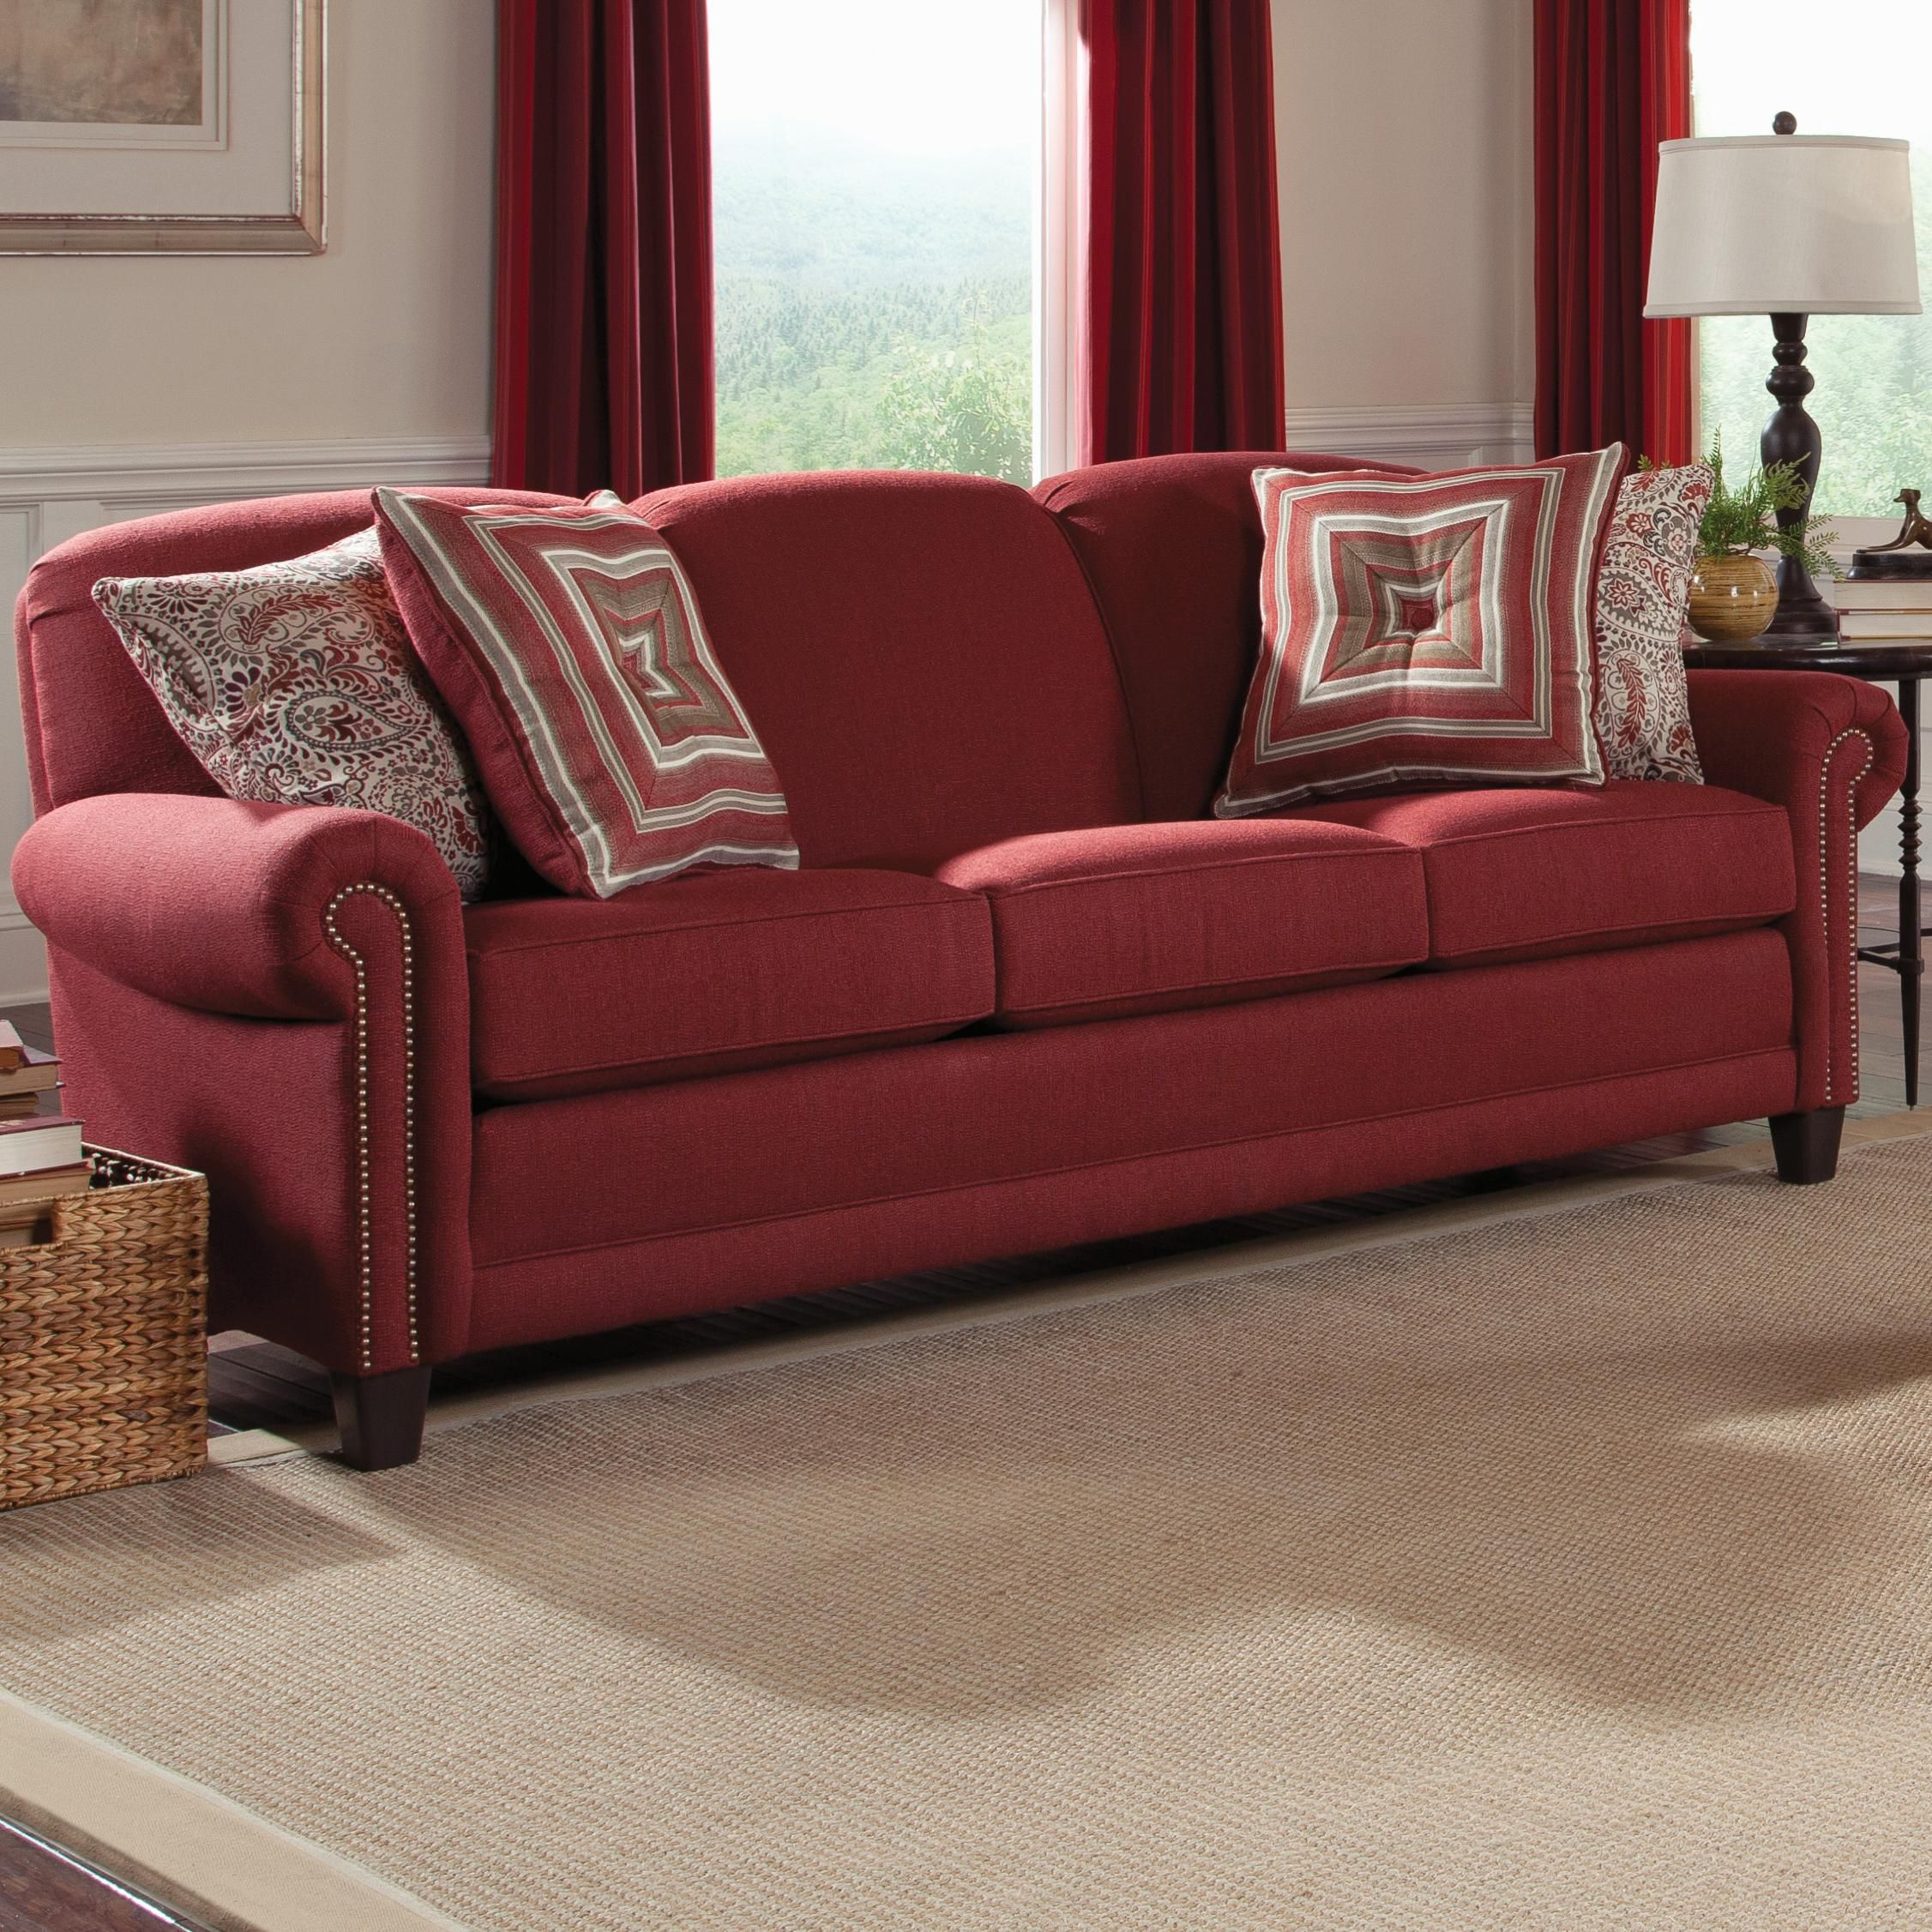 sofa sofas jackson and furniture pillows stores ackland includes pittsburgh original sectionals cupboard